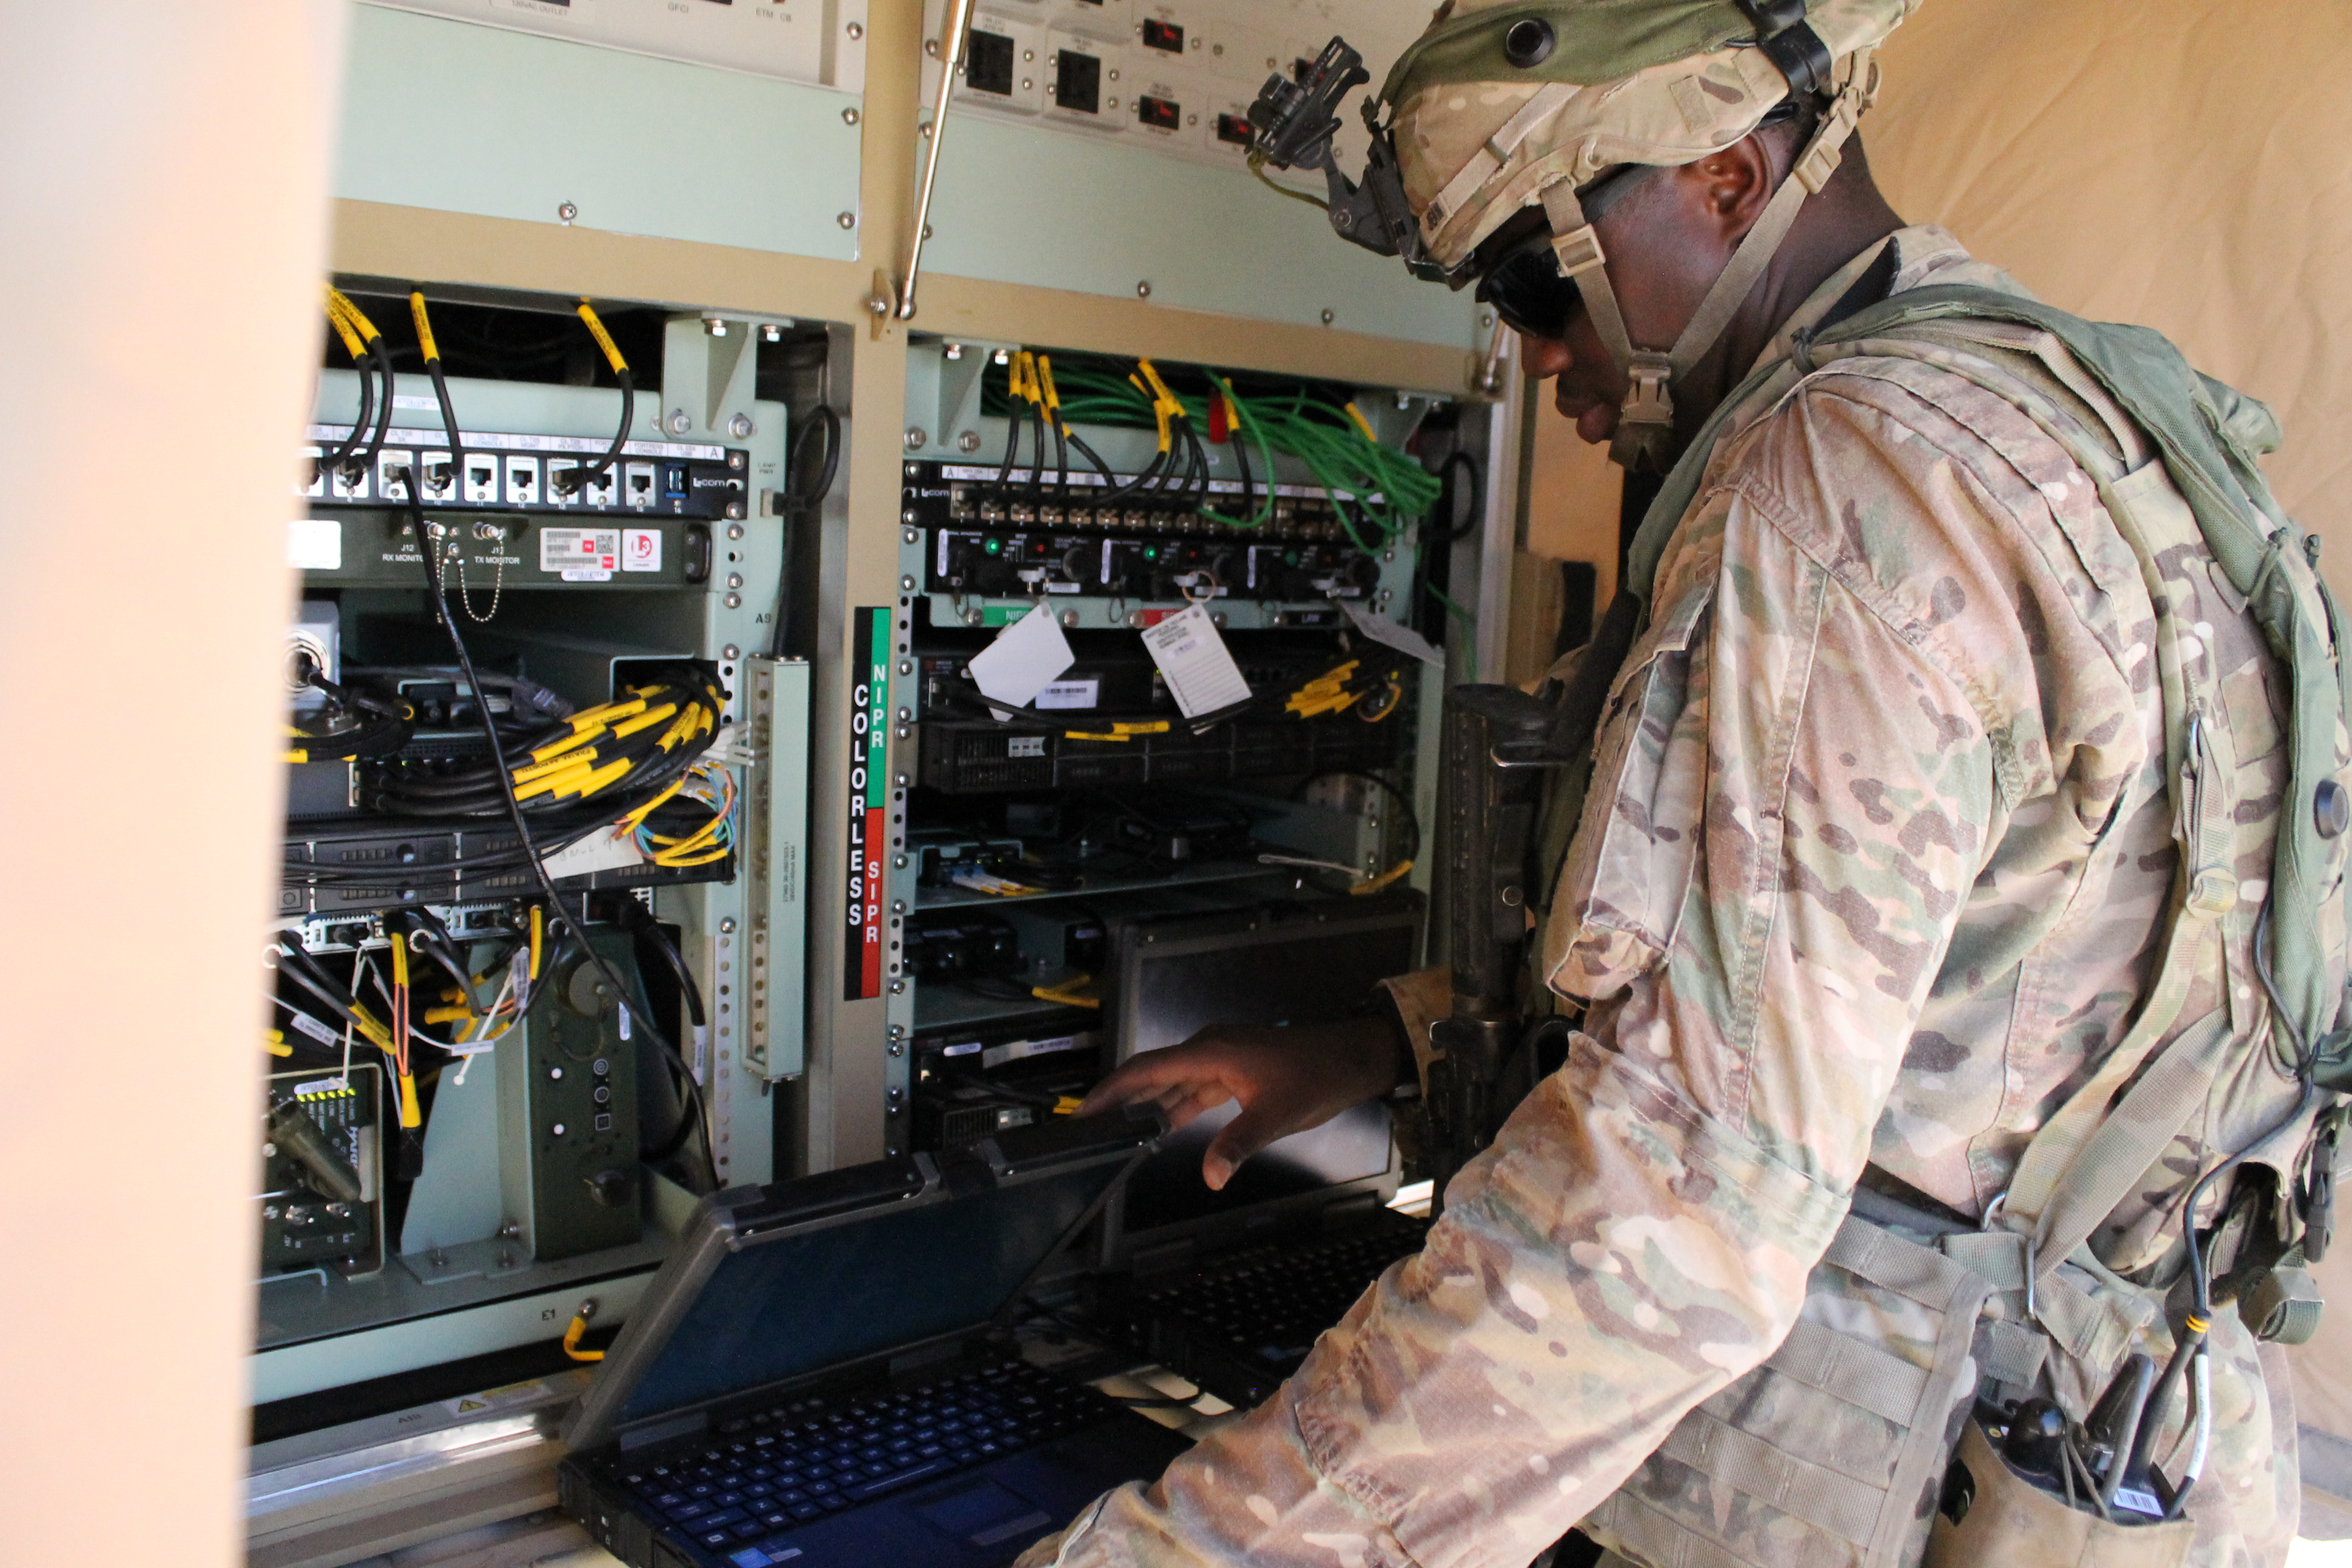 The TCN-L, now in a Humvee, can provide network connectivity on the move, and now consists of one flat panel at waist-level for easy access to the servers. Most of the equipment is now virtualized so it saves space and the air-conditioning to keep the system cool doesn't have to push as hard so overheating isn't as much of an issue, even in the desert in July. (Jen Judson/Staff)